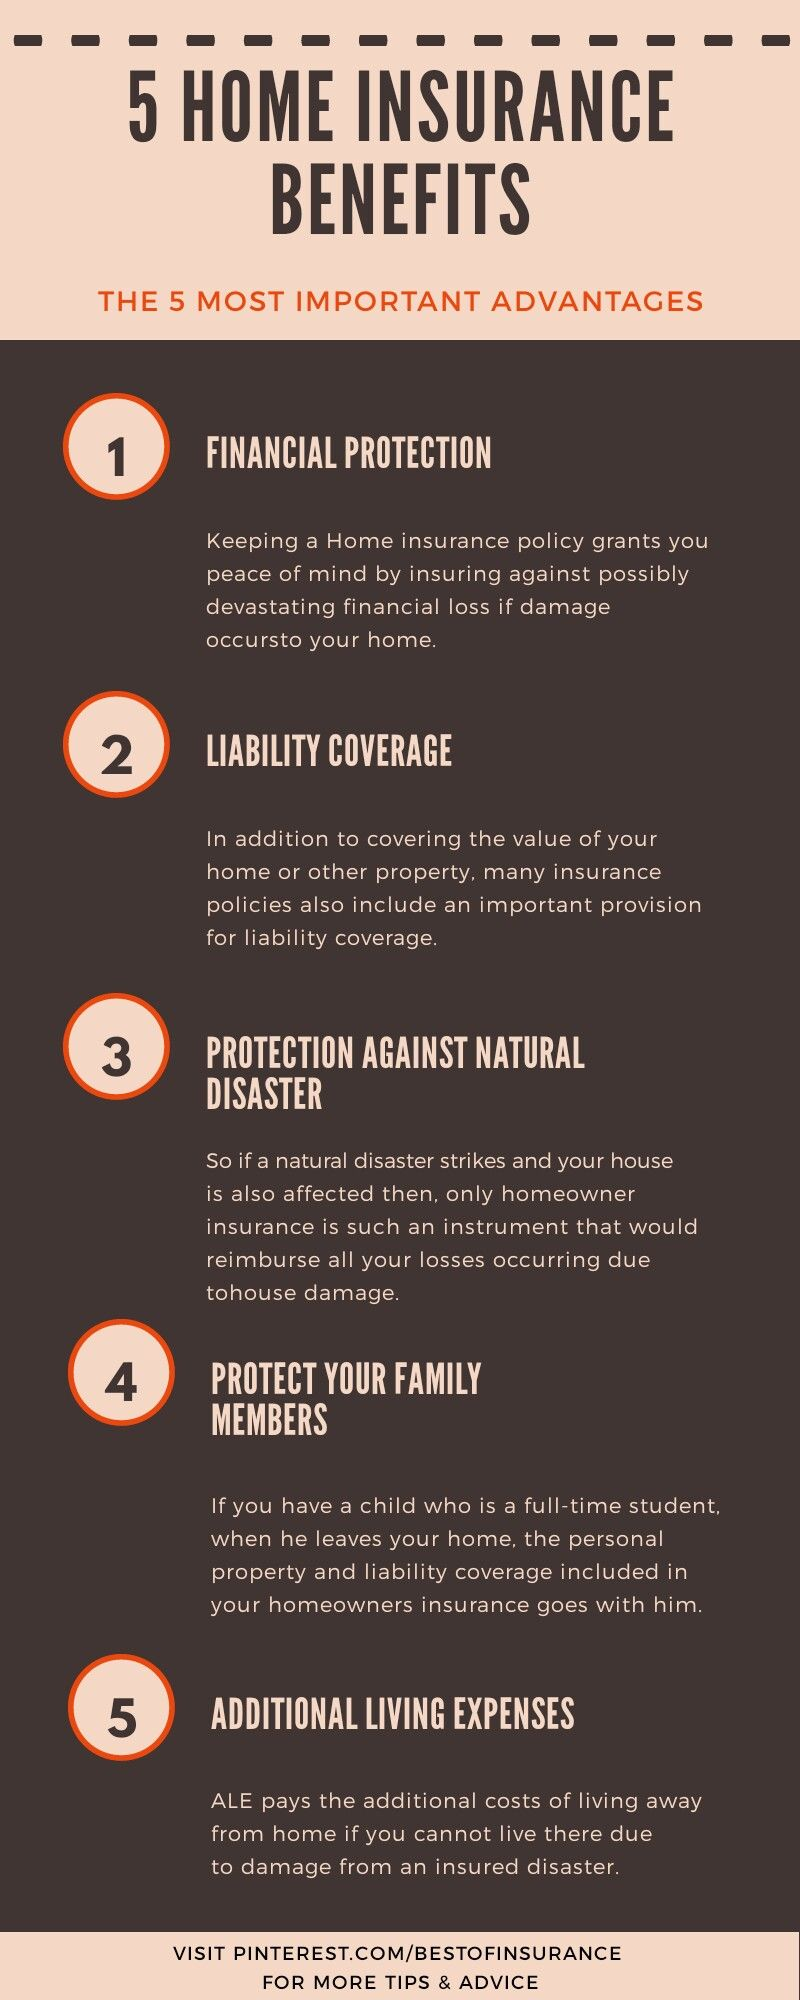 35 Awesome Home Insurance Quotes For New Builds In 2020 Life Insurance Facts Life Insurance Policy Home Insurance Quotes